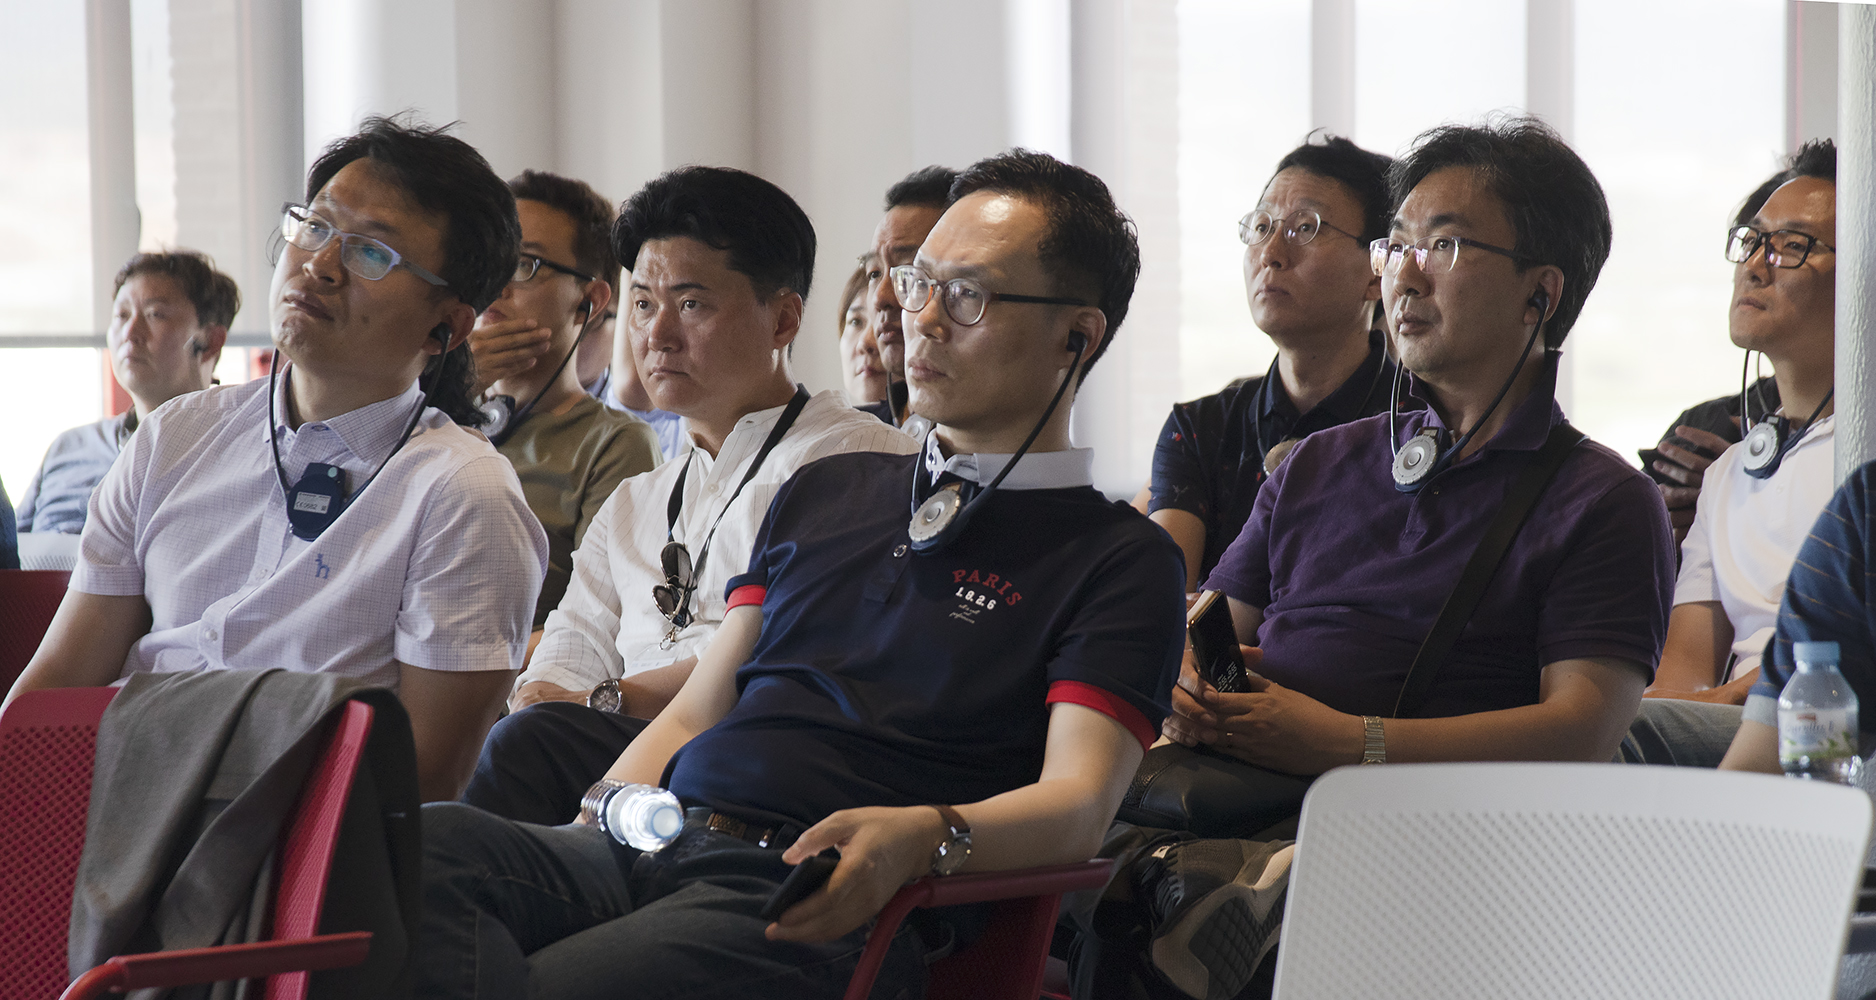 Bella Aurora Labs' business model inspires Korean executives